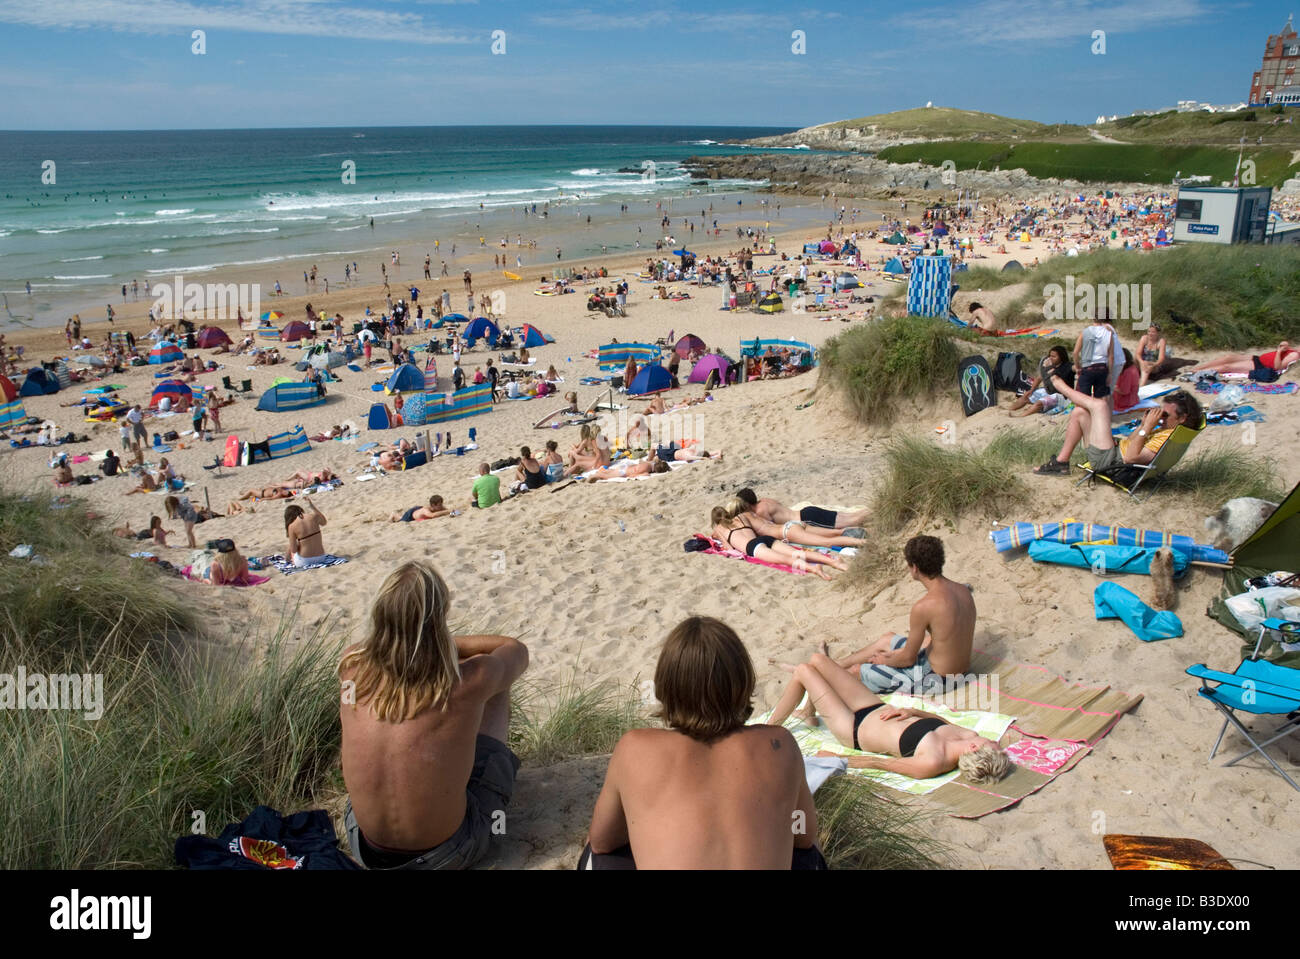 Summer holiday crowds Fistral Beach Newquay Cornwall England UK - Stock Image